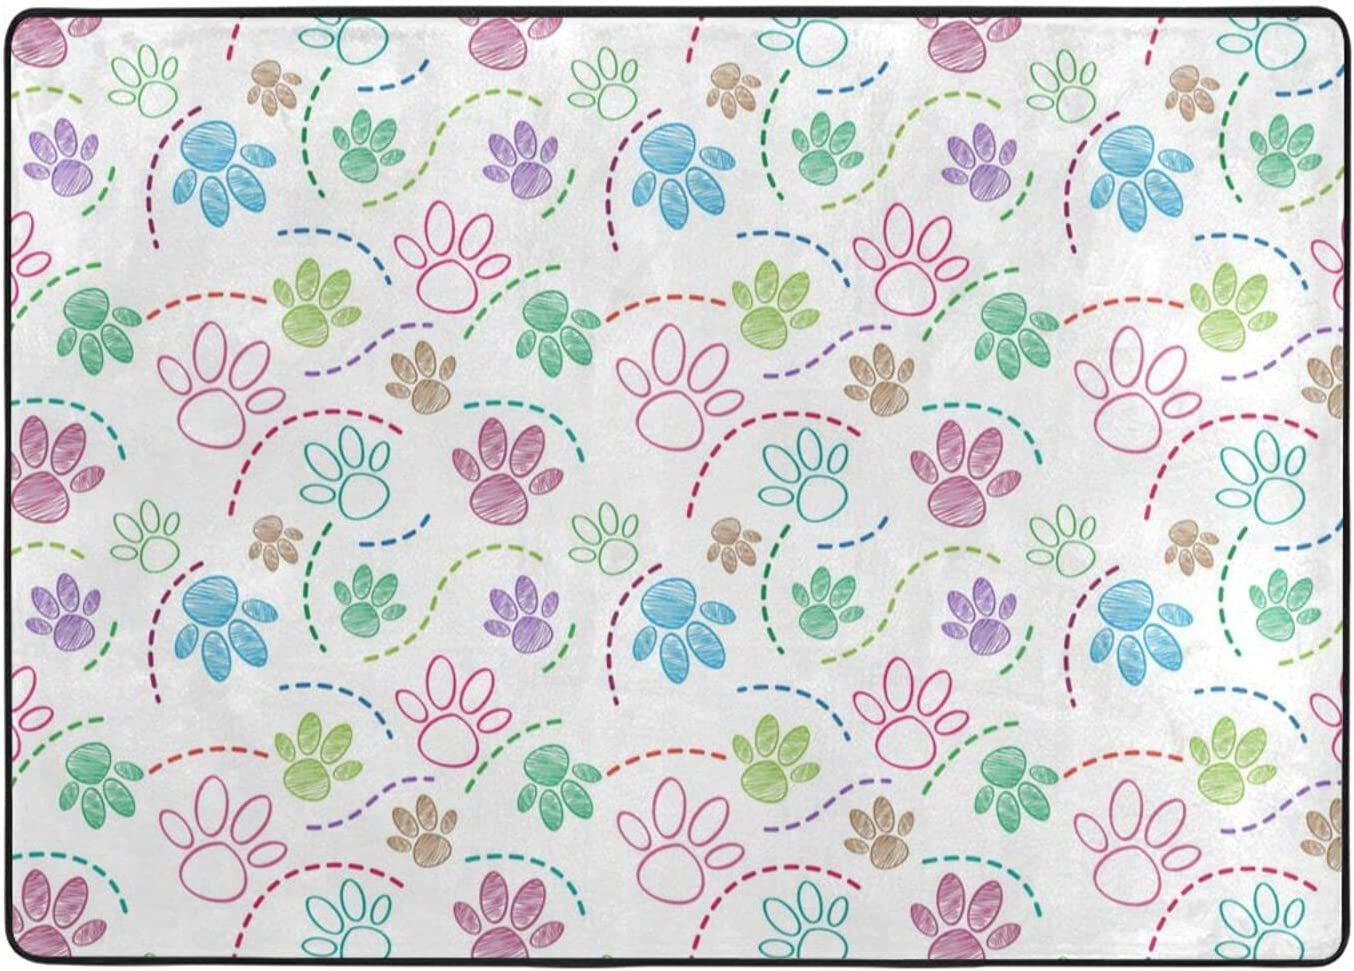 Dog Pet Foot Draw Area Rug Large Popular brand in the world Decoration Mat Sacramento Mall Carpet Home